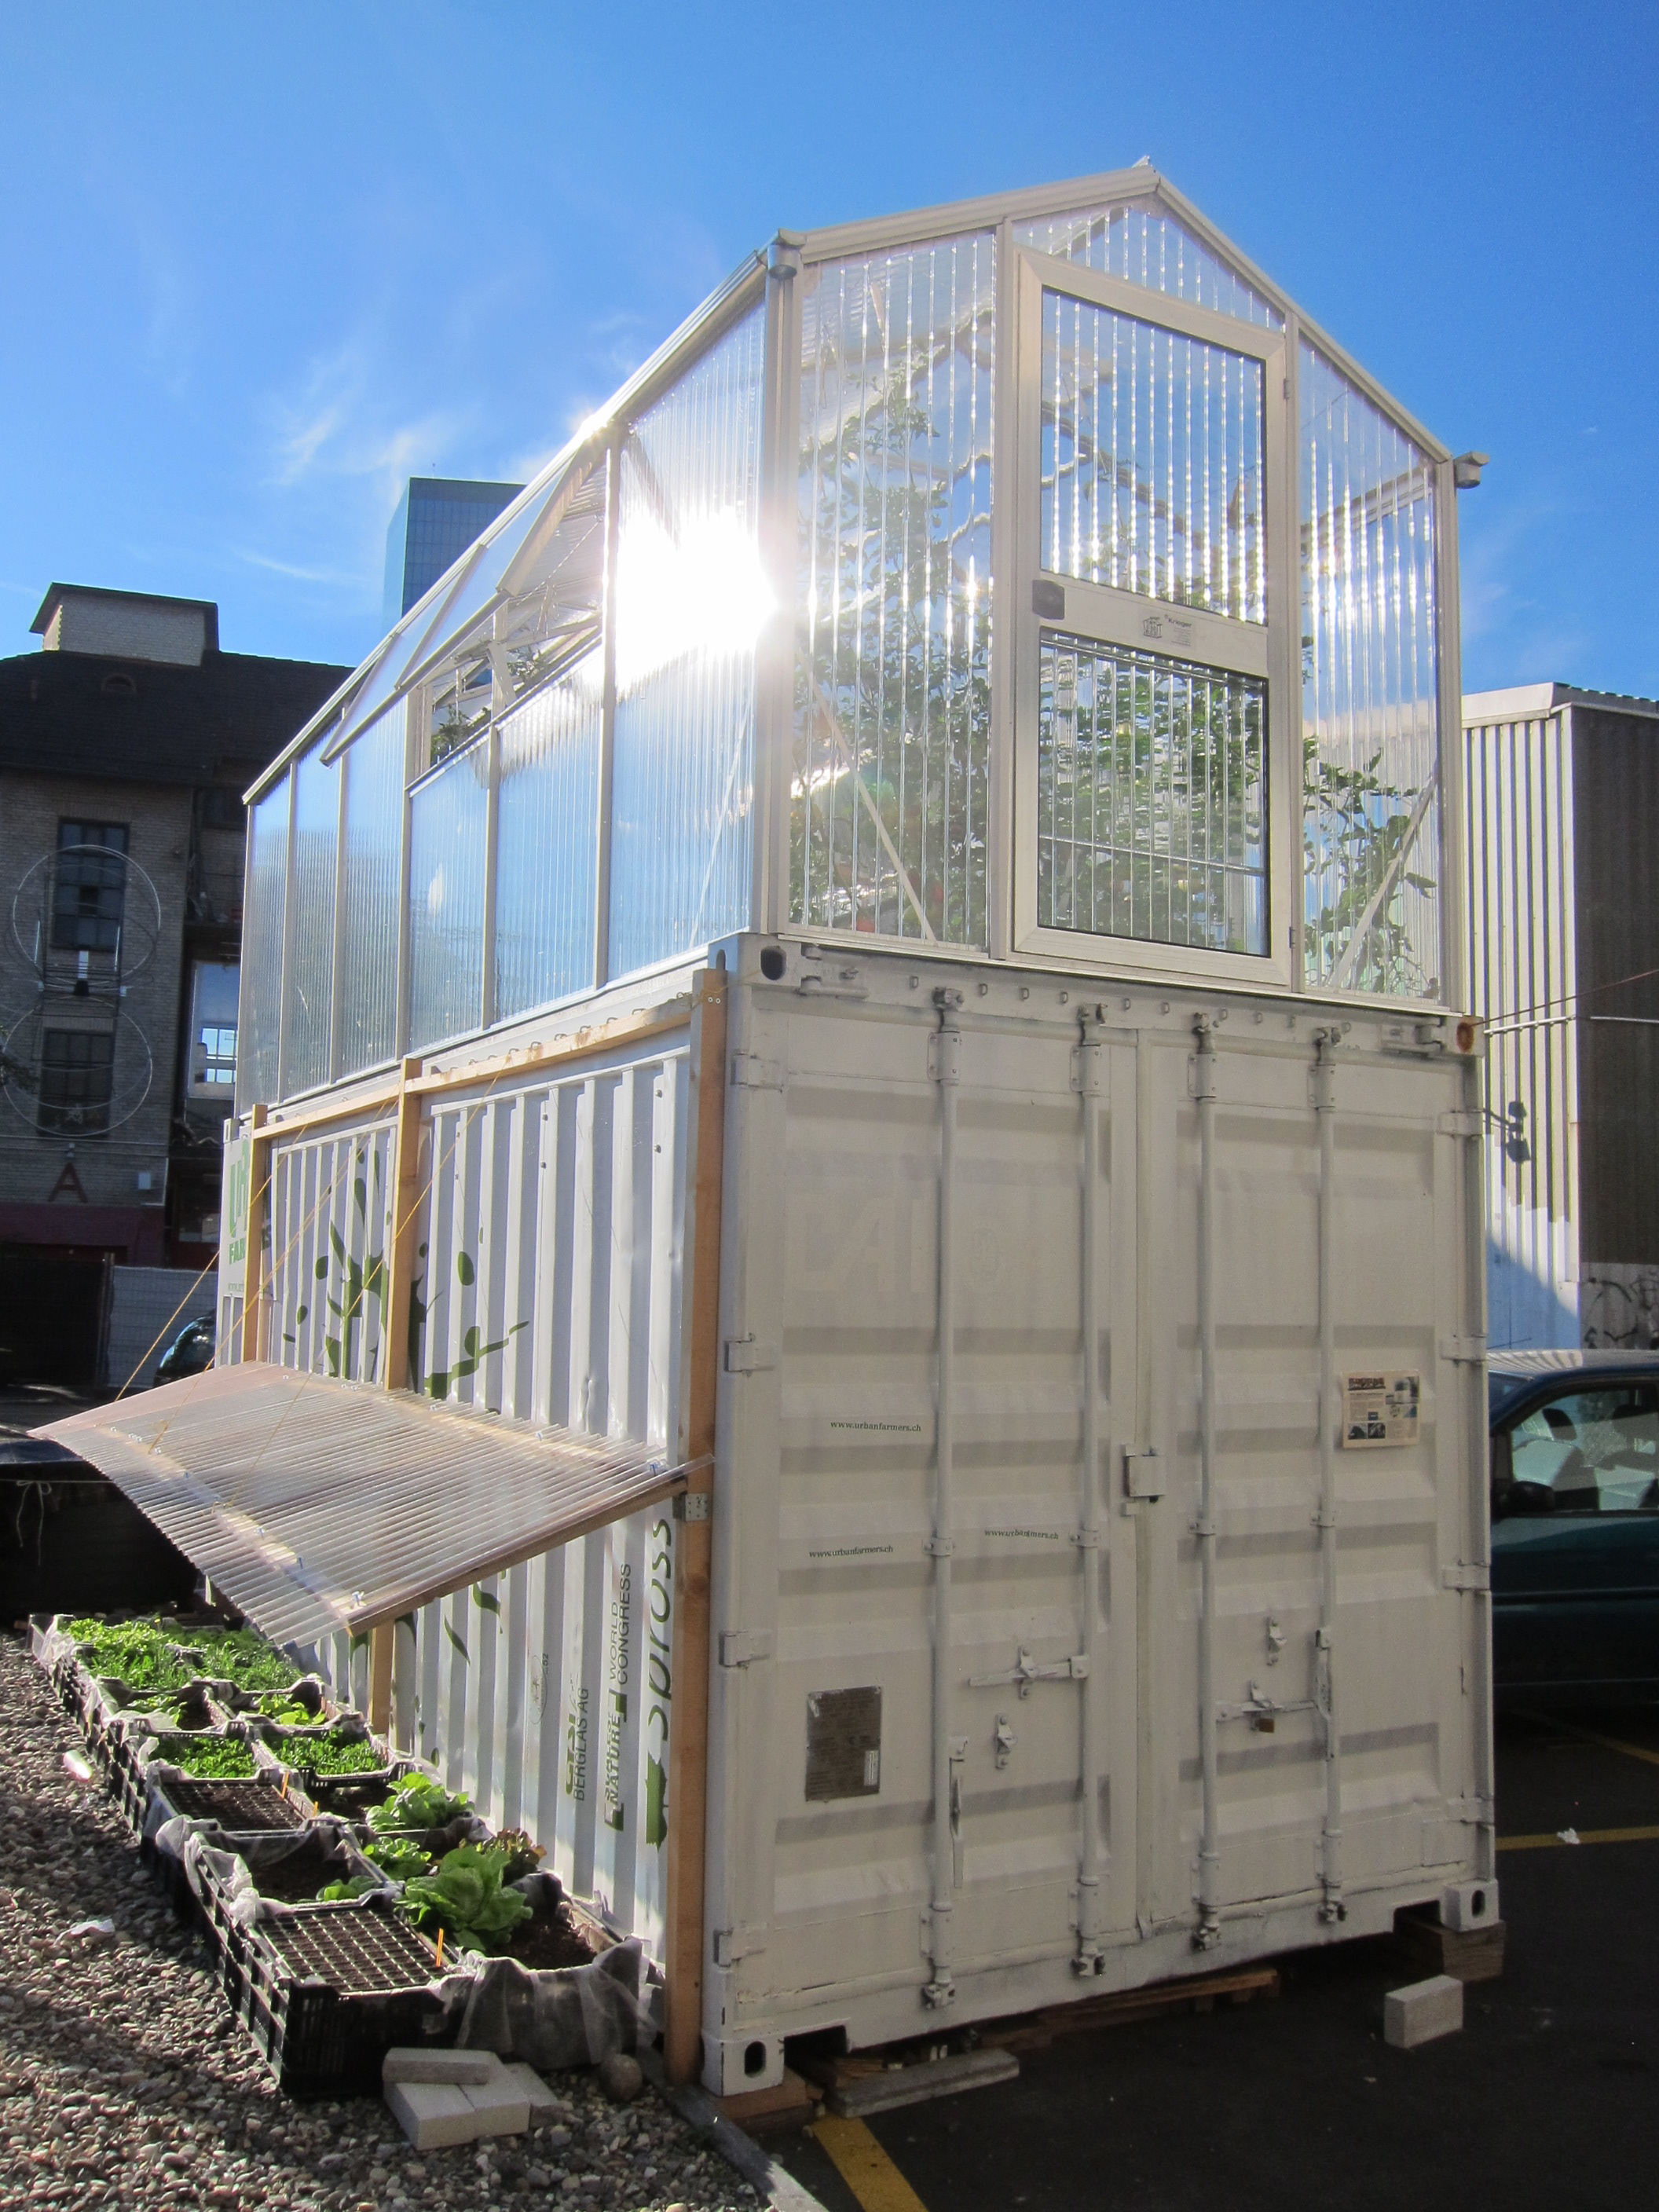 Urban farmers box at the hub zurich by eekim flickr photo sharing for Craigslist eugene farm and garden